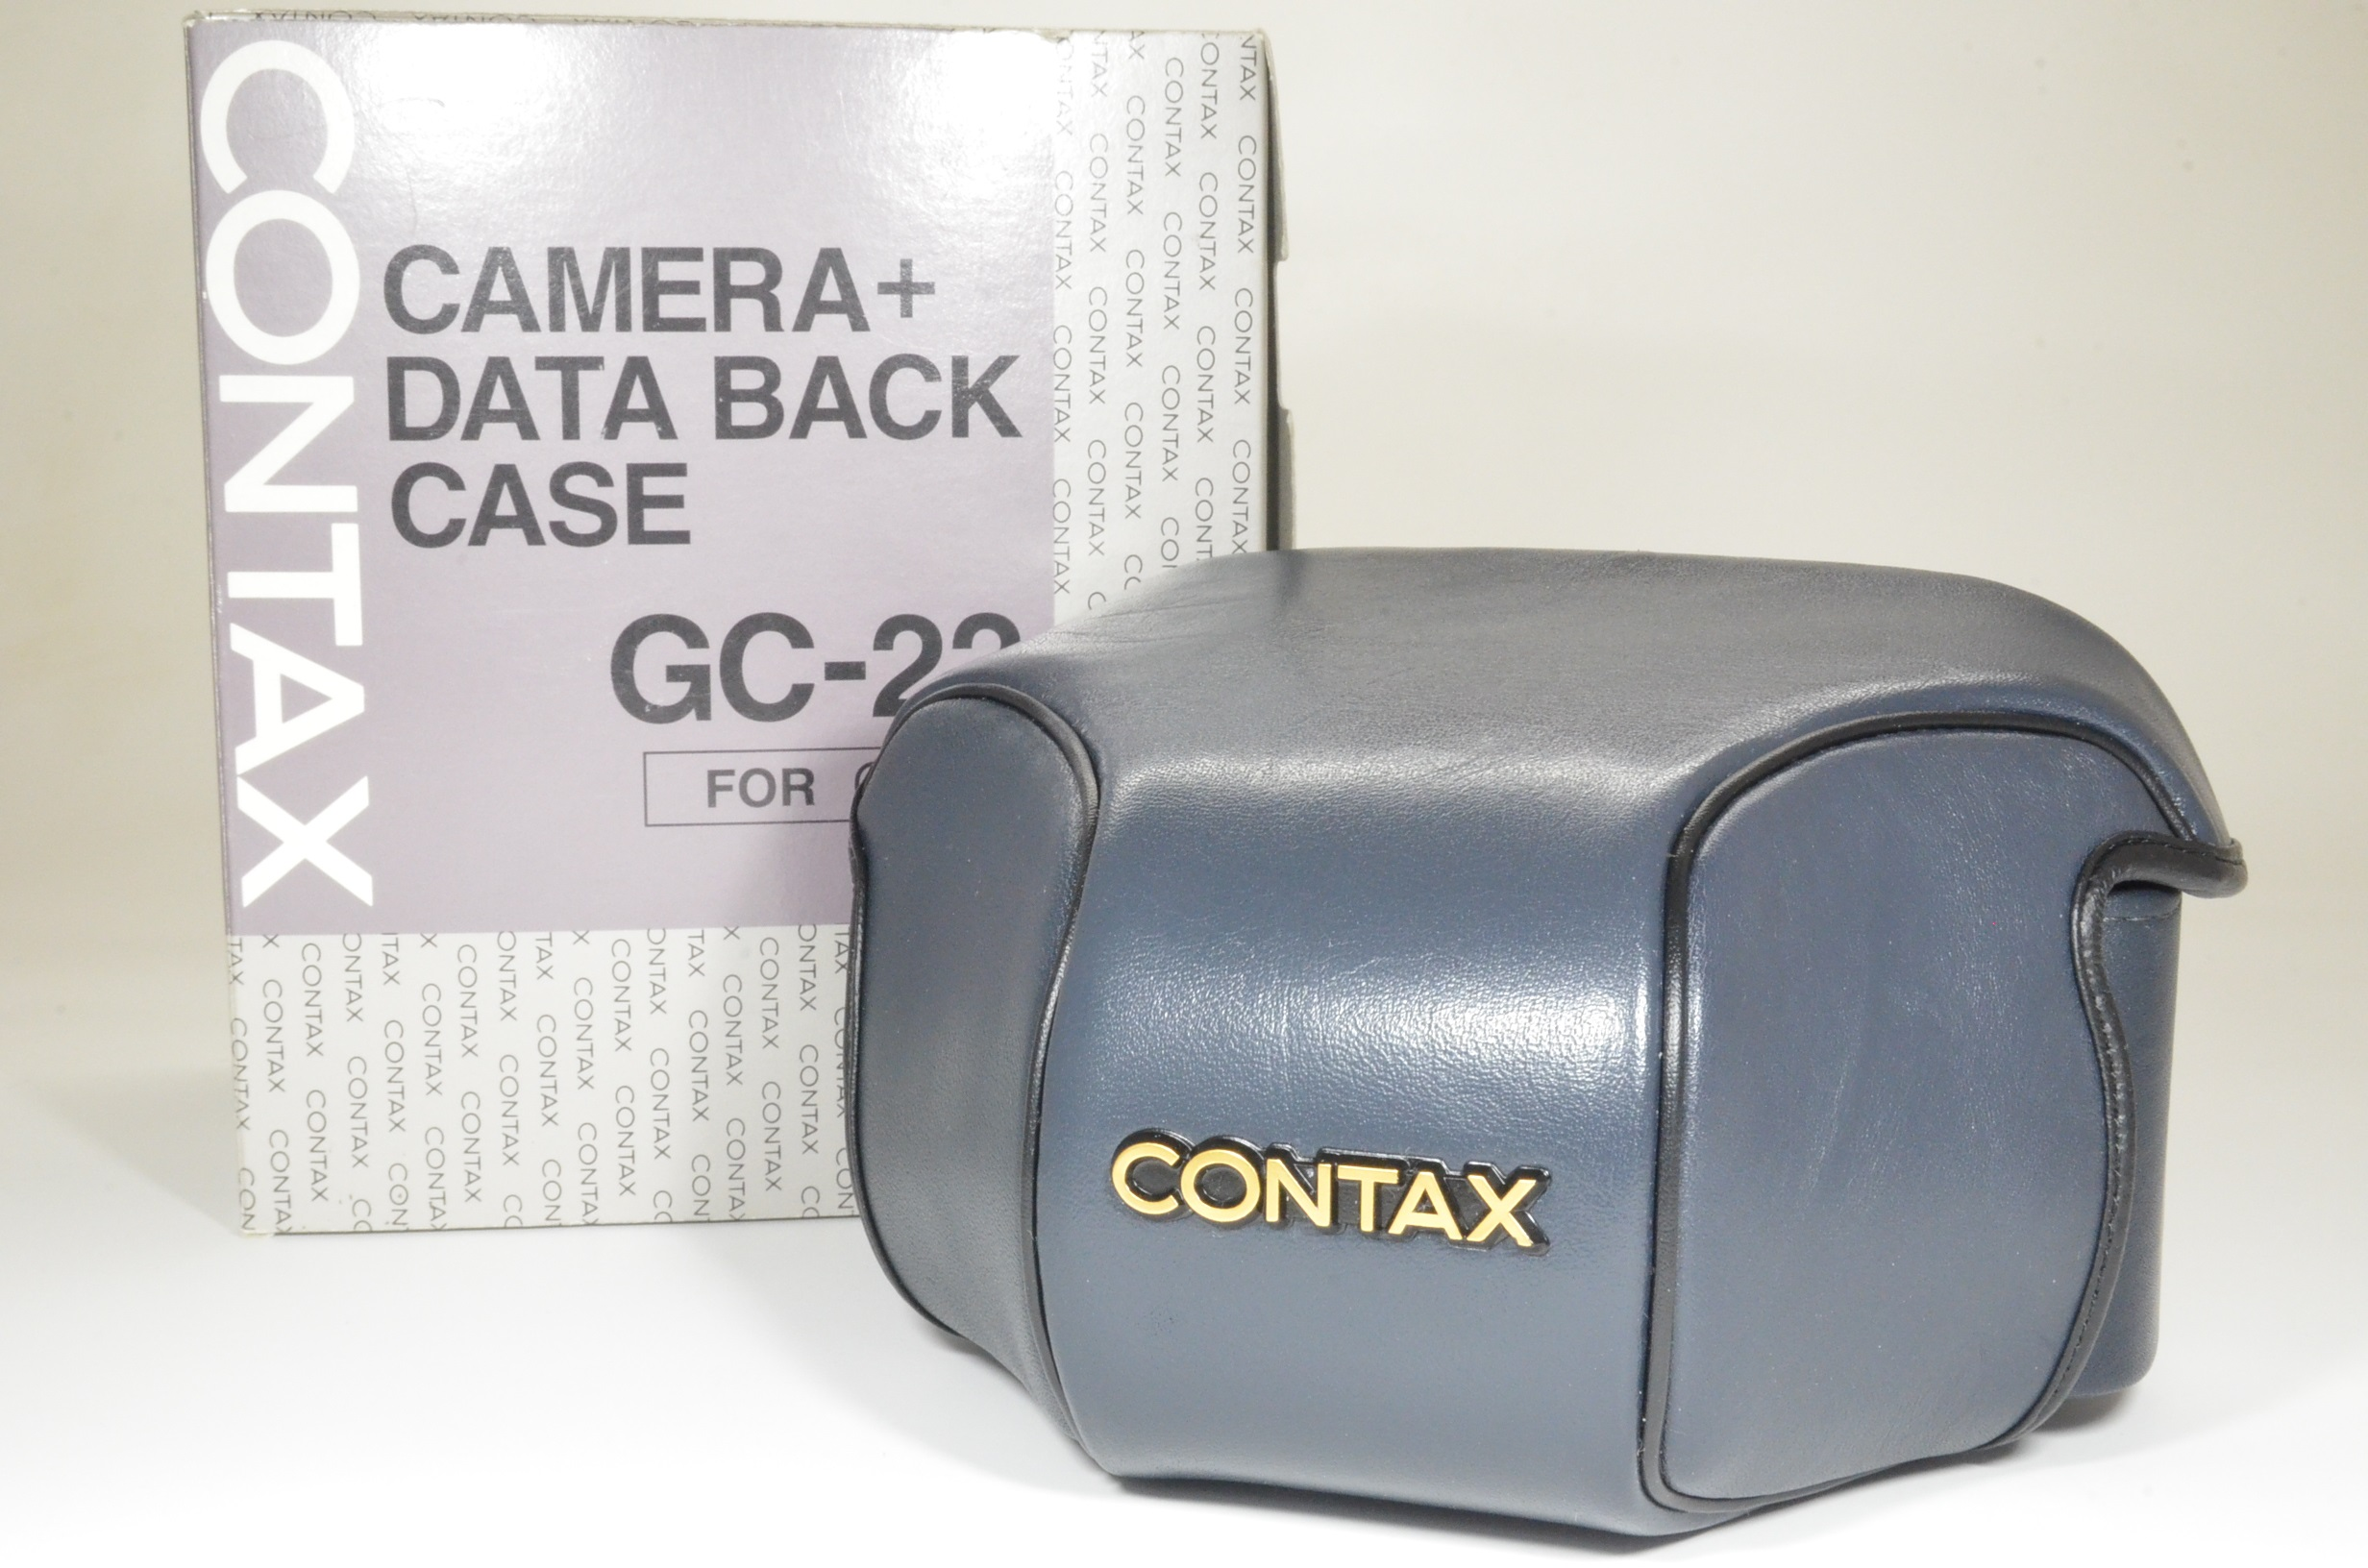 contax original camera case for g2 data back gc-22 and gc-211